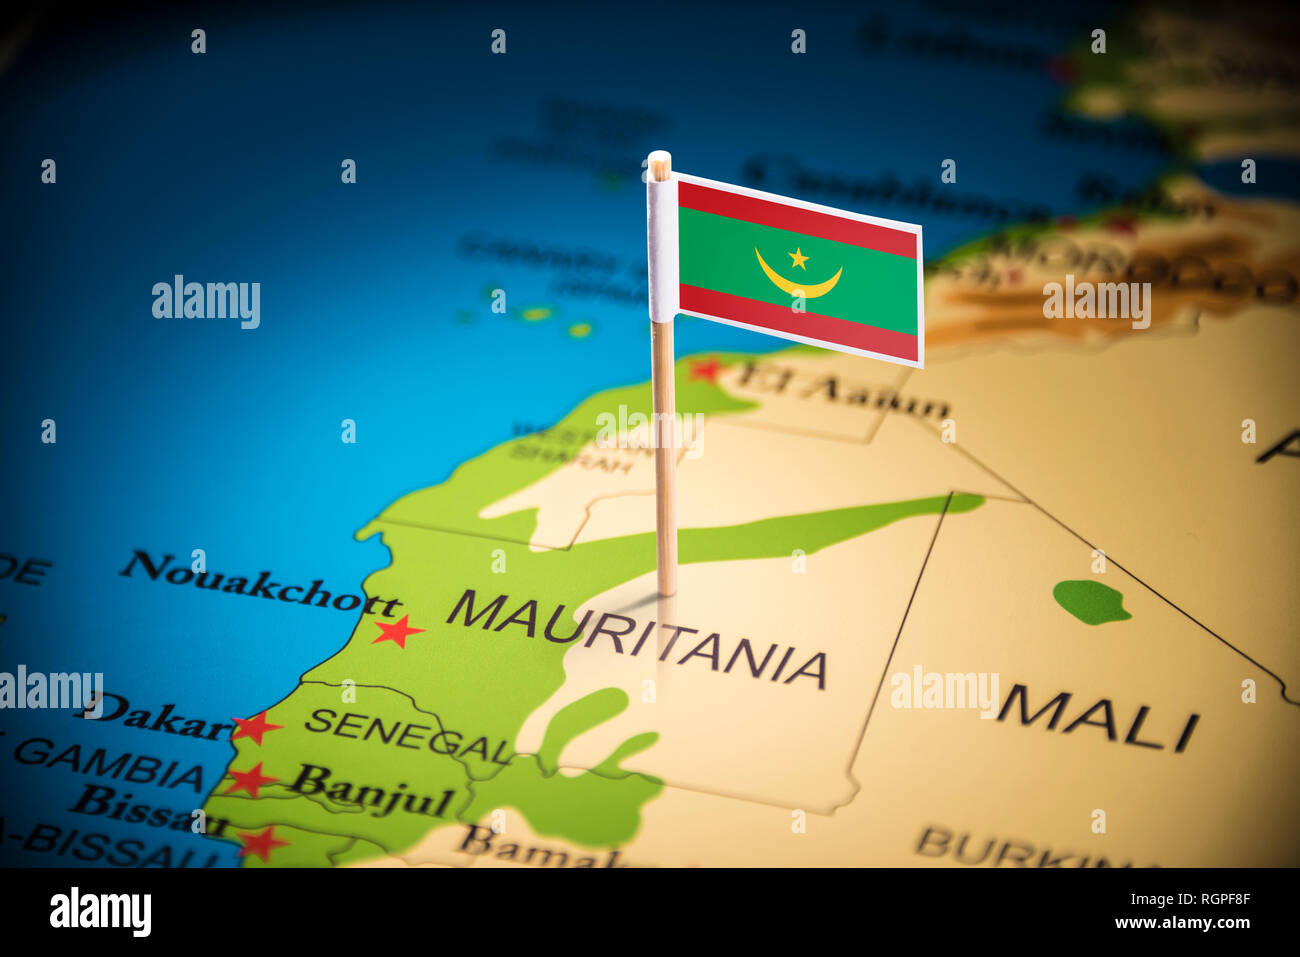 Mauritania marked with a flag on the map - Stock Image